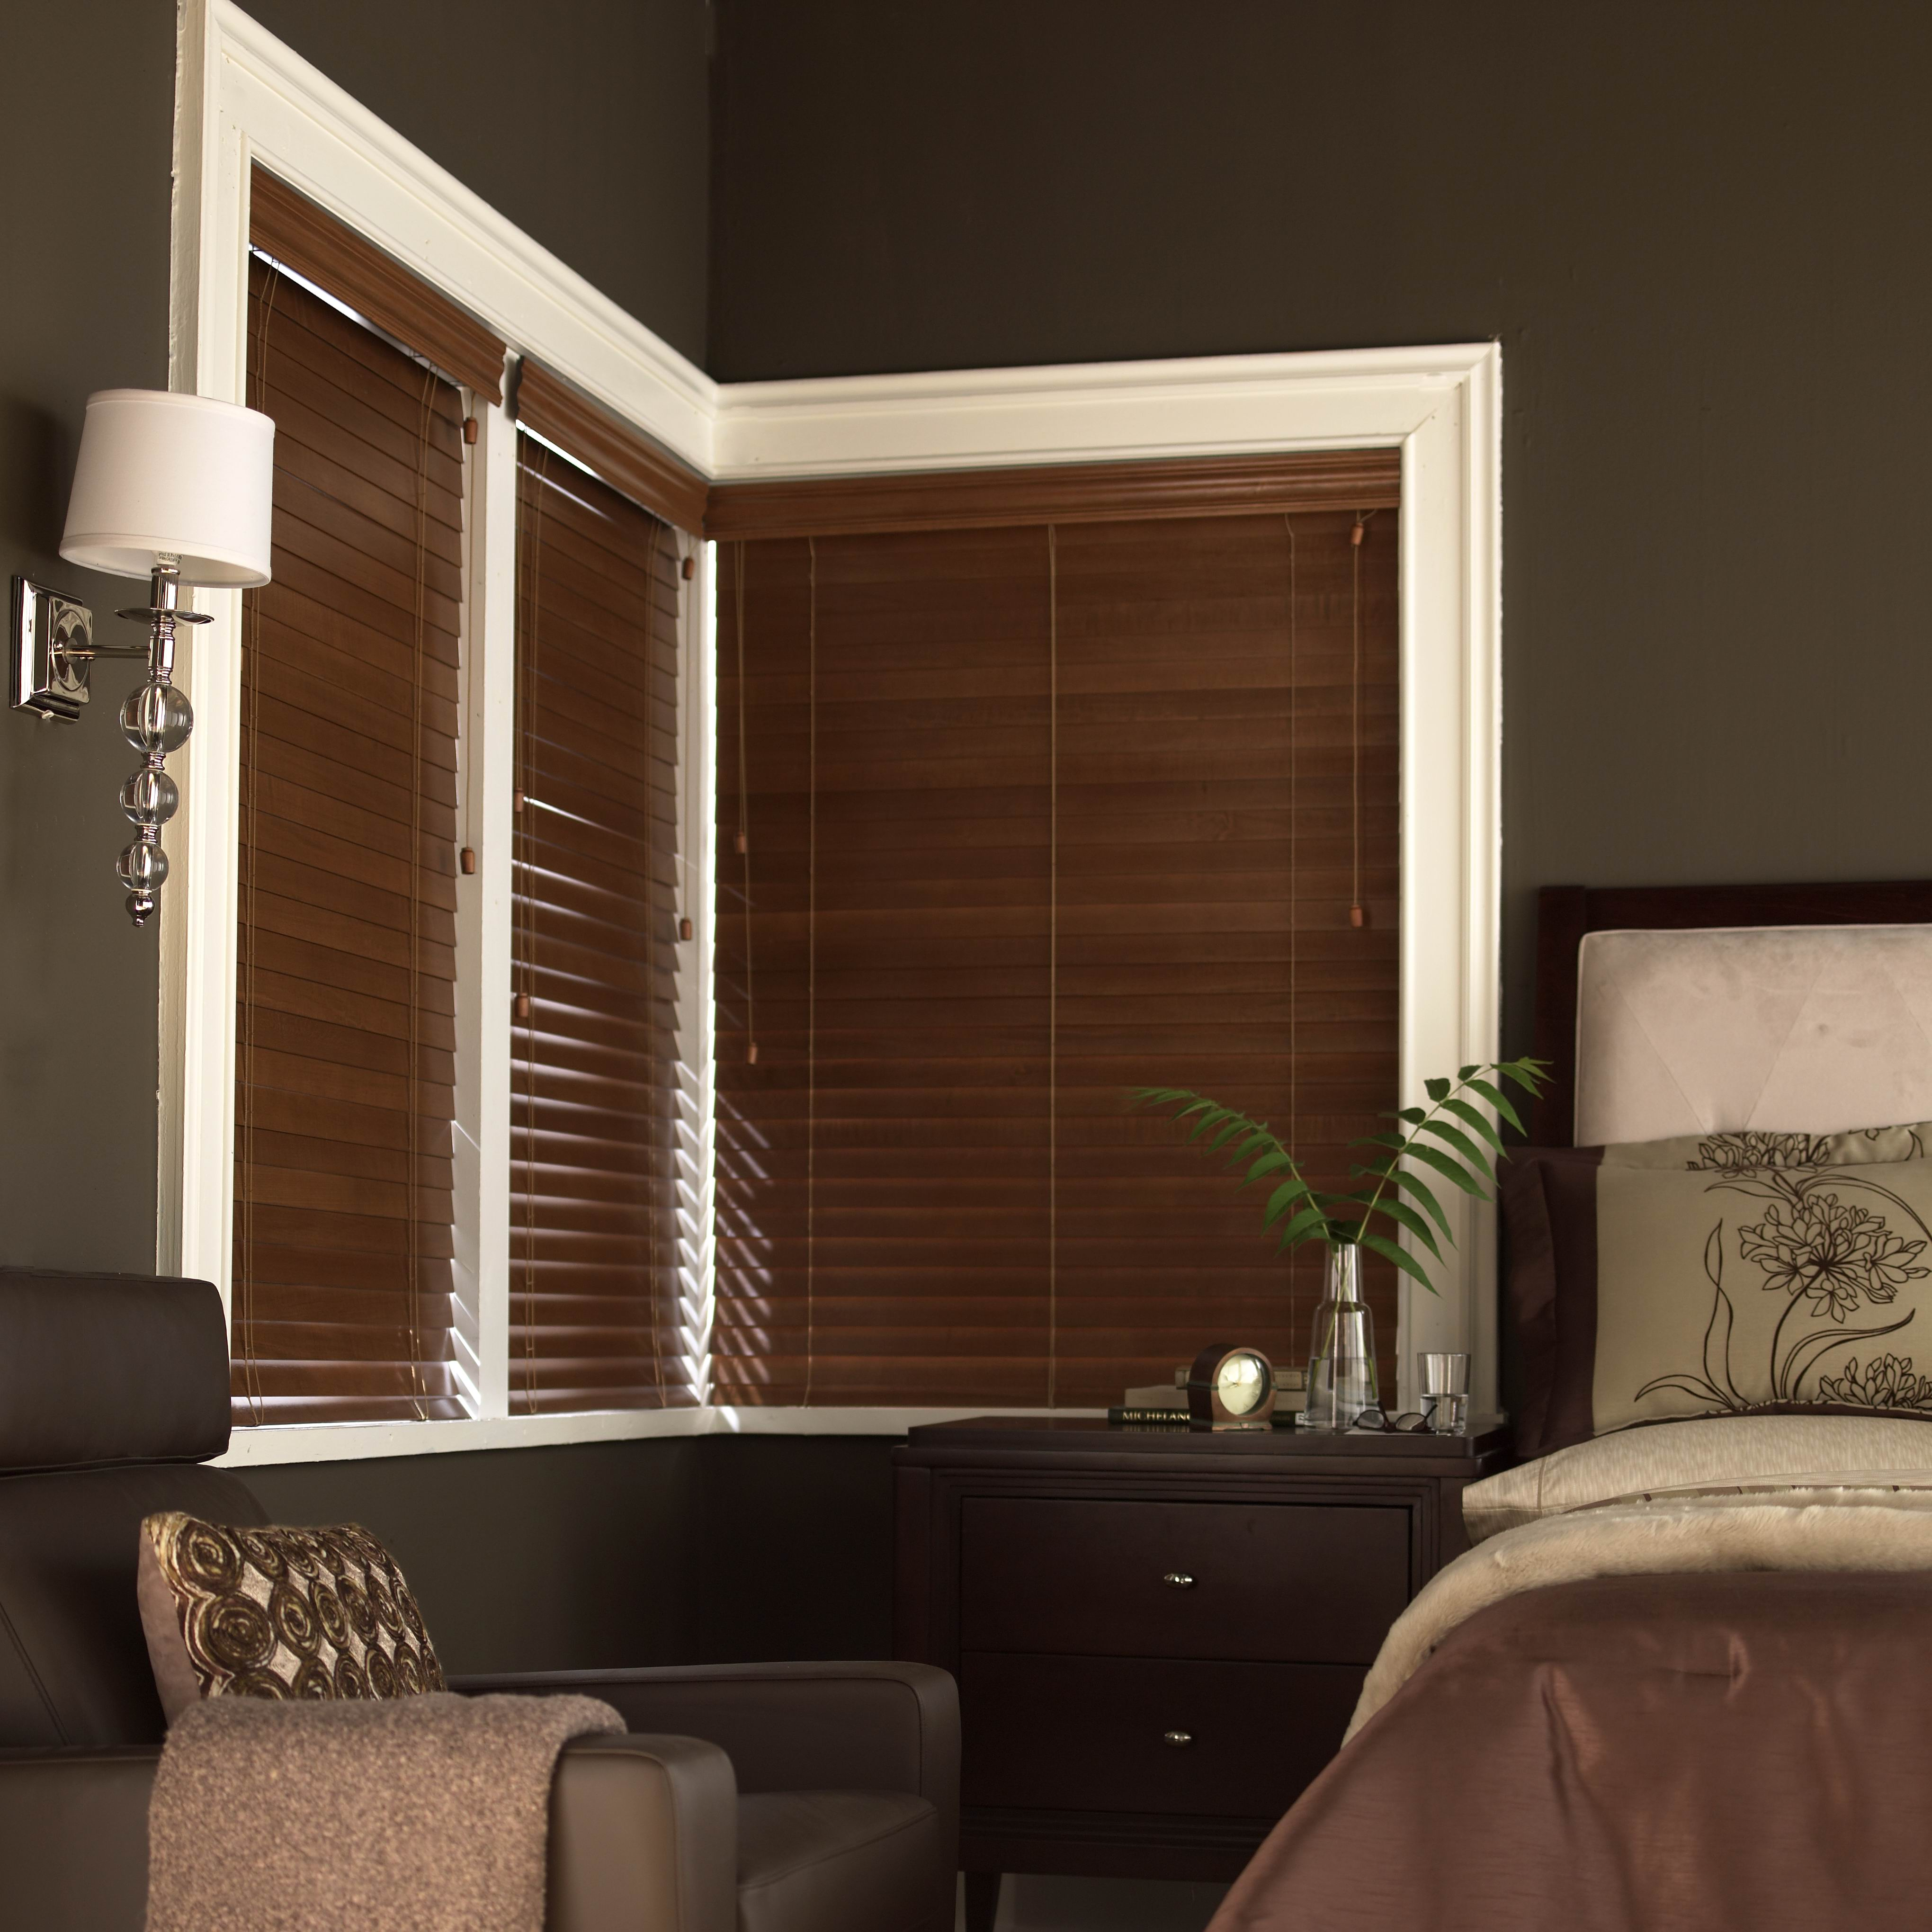 Chic Window With Trim Board And Levolor Cellular Shades On Dark Olive Wall With Light For Home Interior Design Ideas